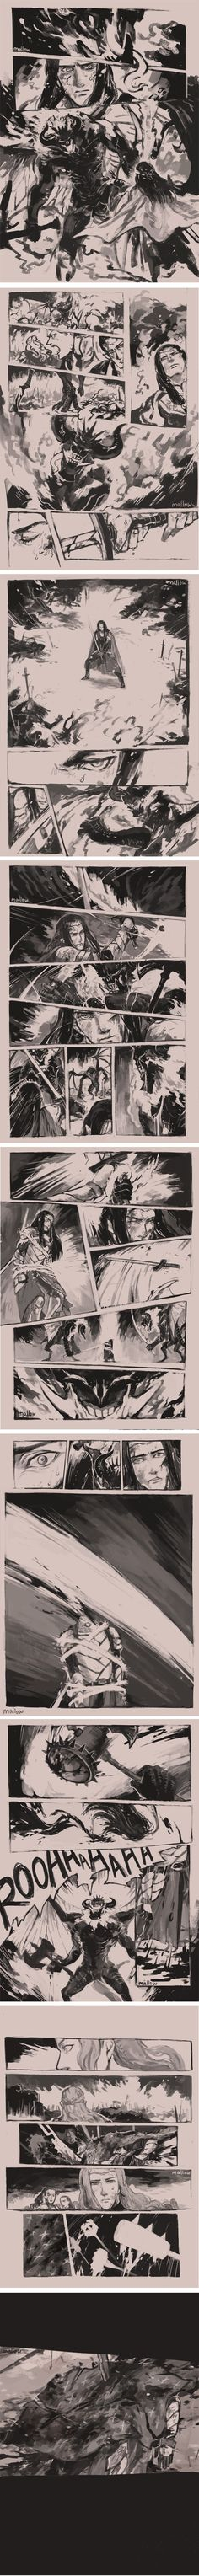 The death of Fingon, in comic format. All the heartbreak of Nirnaeth Arnoediad, now illustrated! Say goodbye to whatever is left of your shattered hearts, Silmarillion fans! *cries*